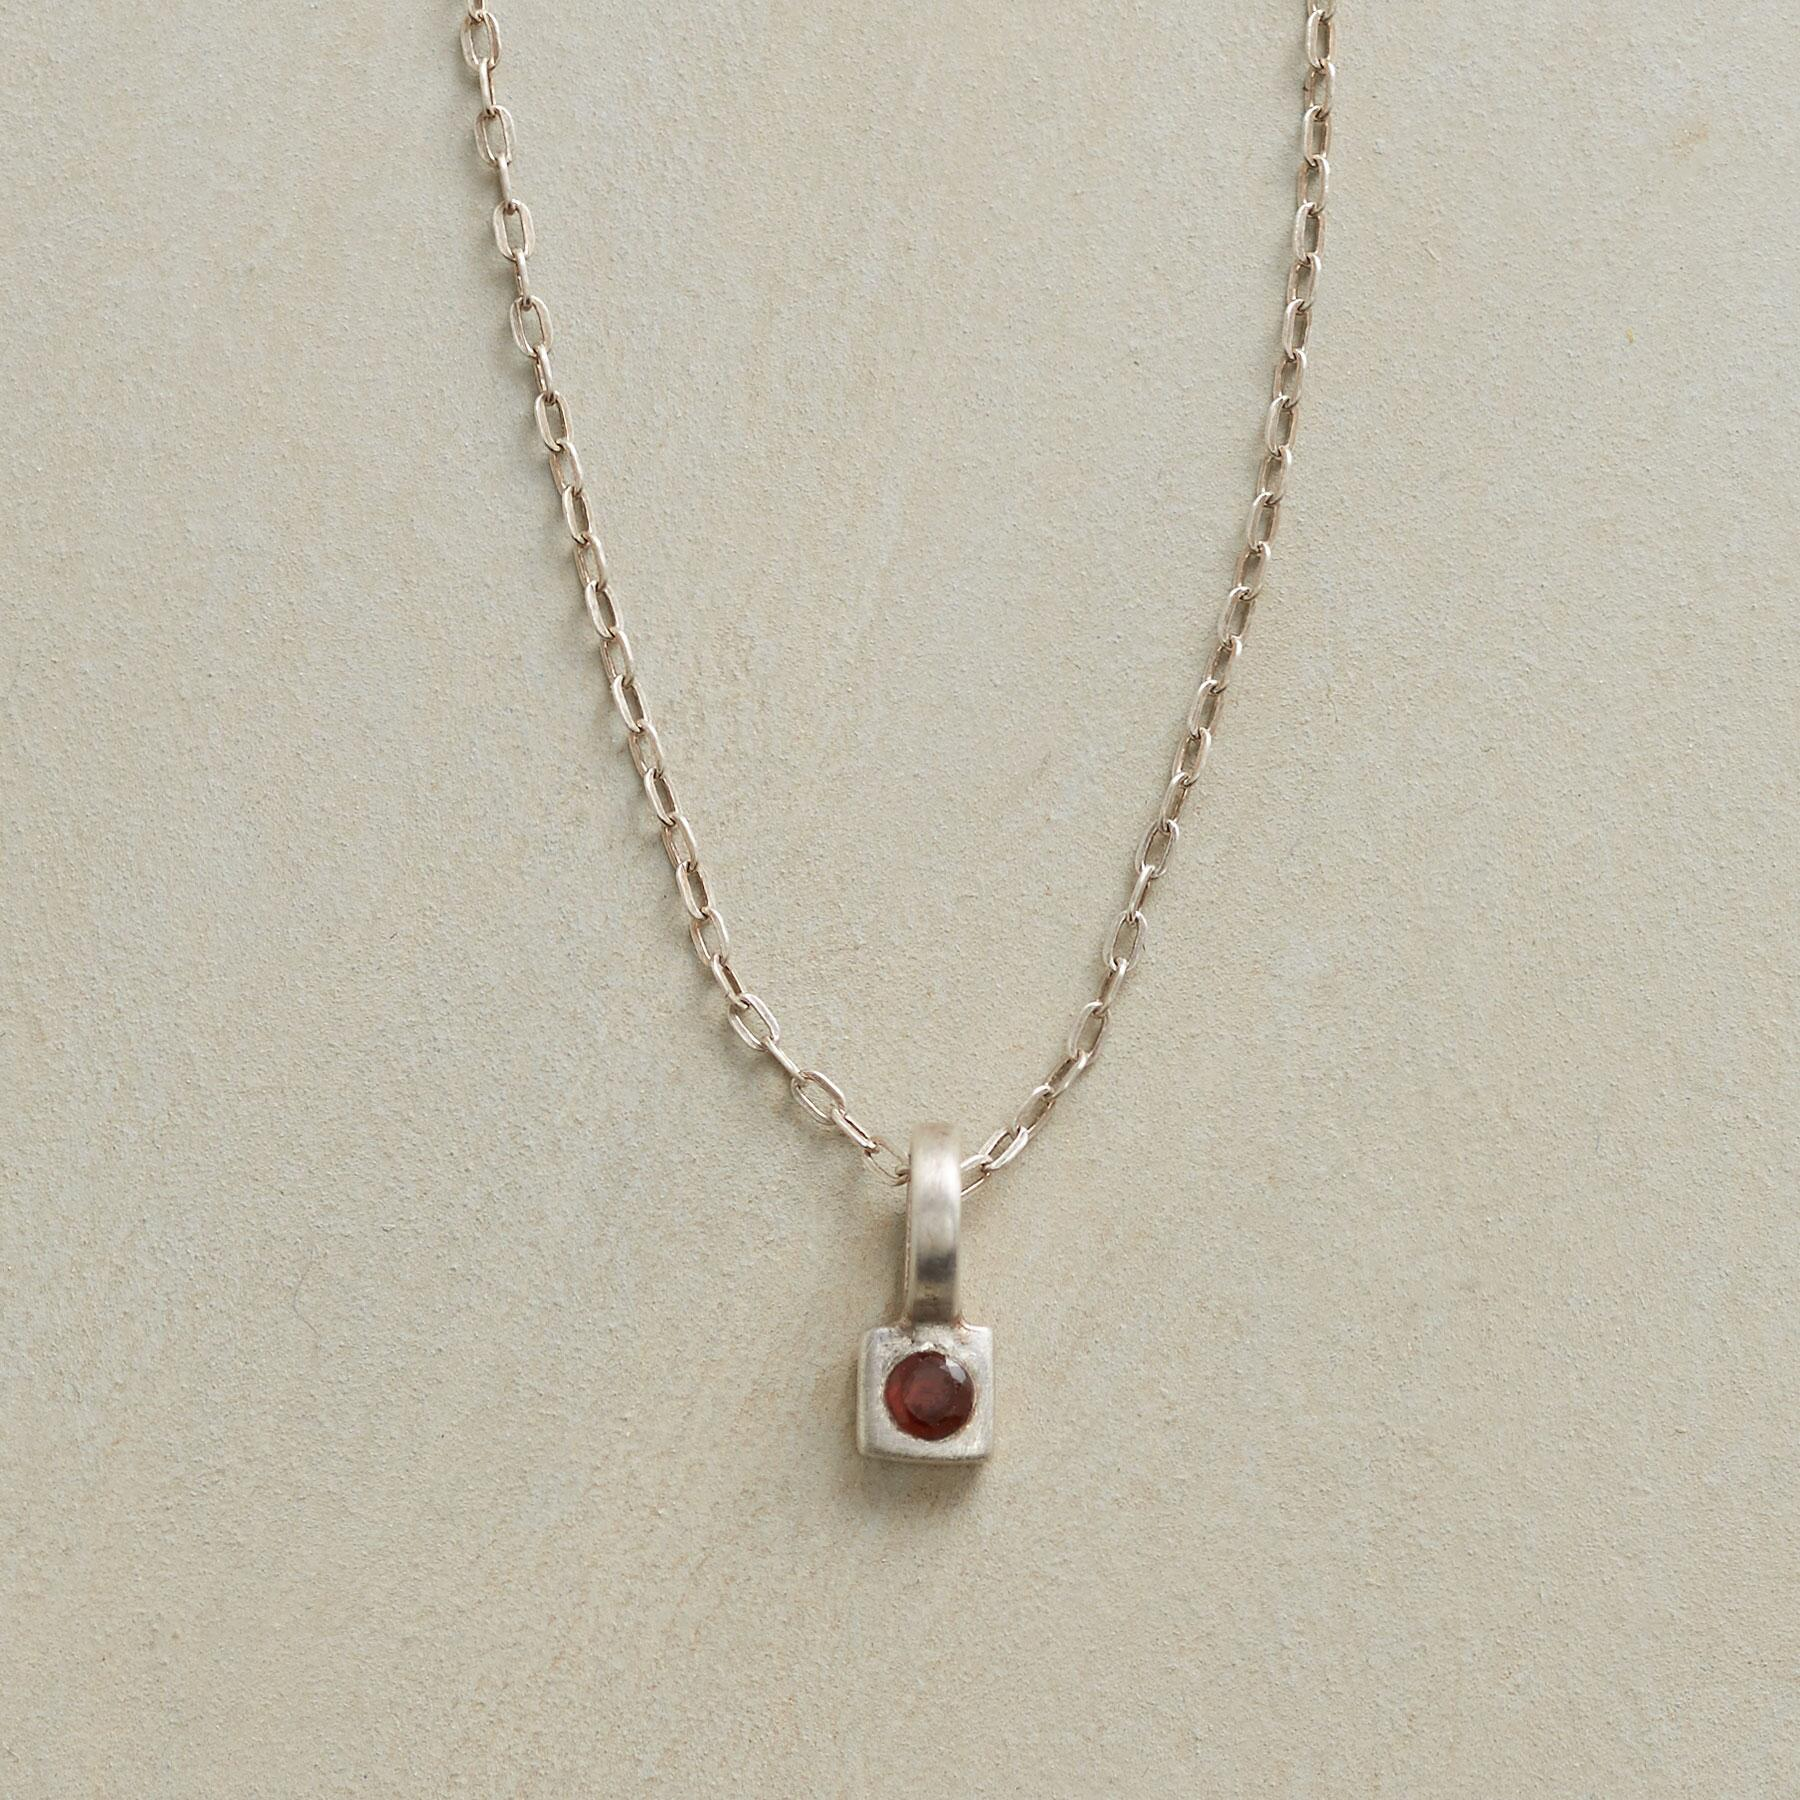 WISH LIST NECKLACE: View 1